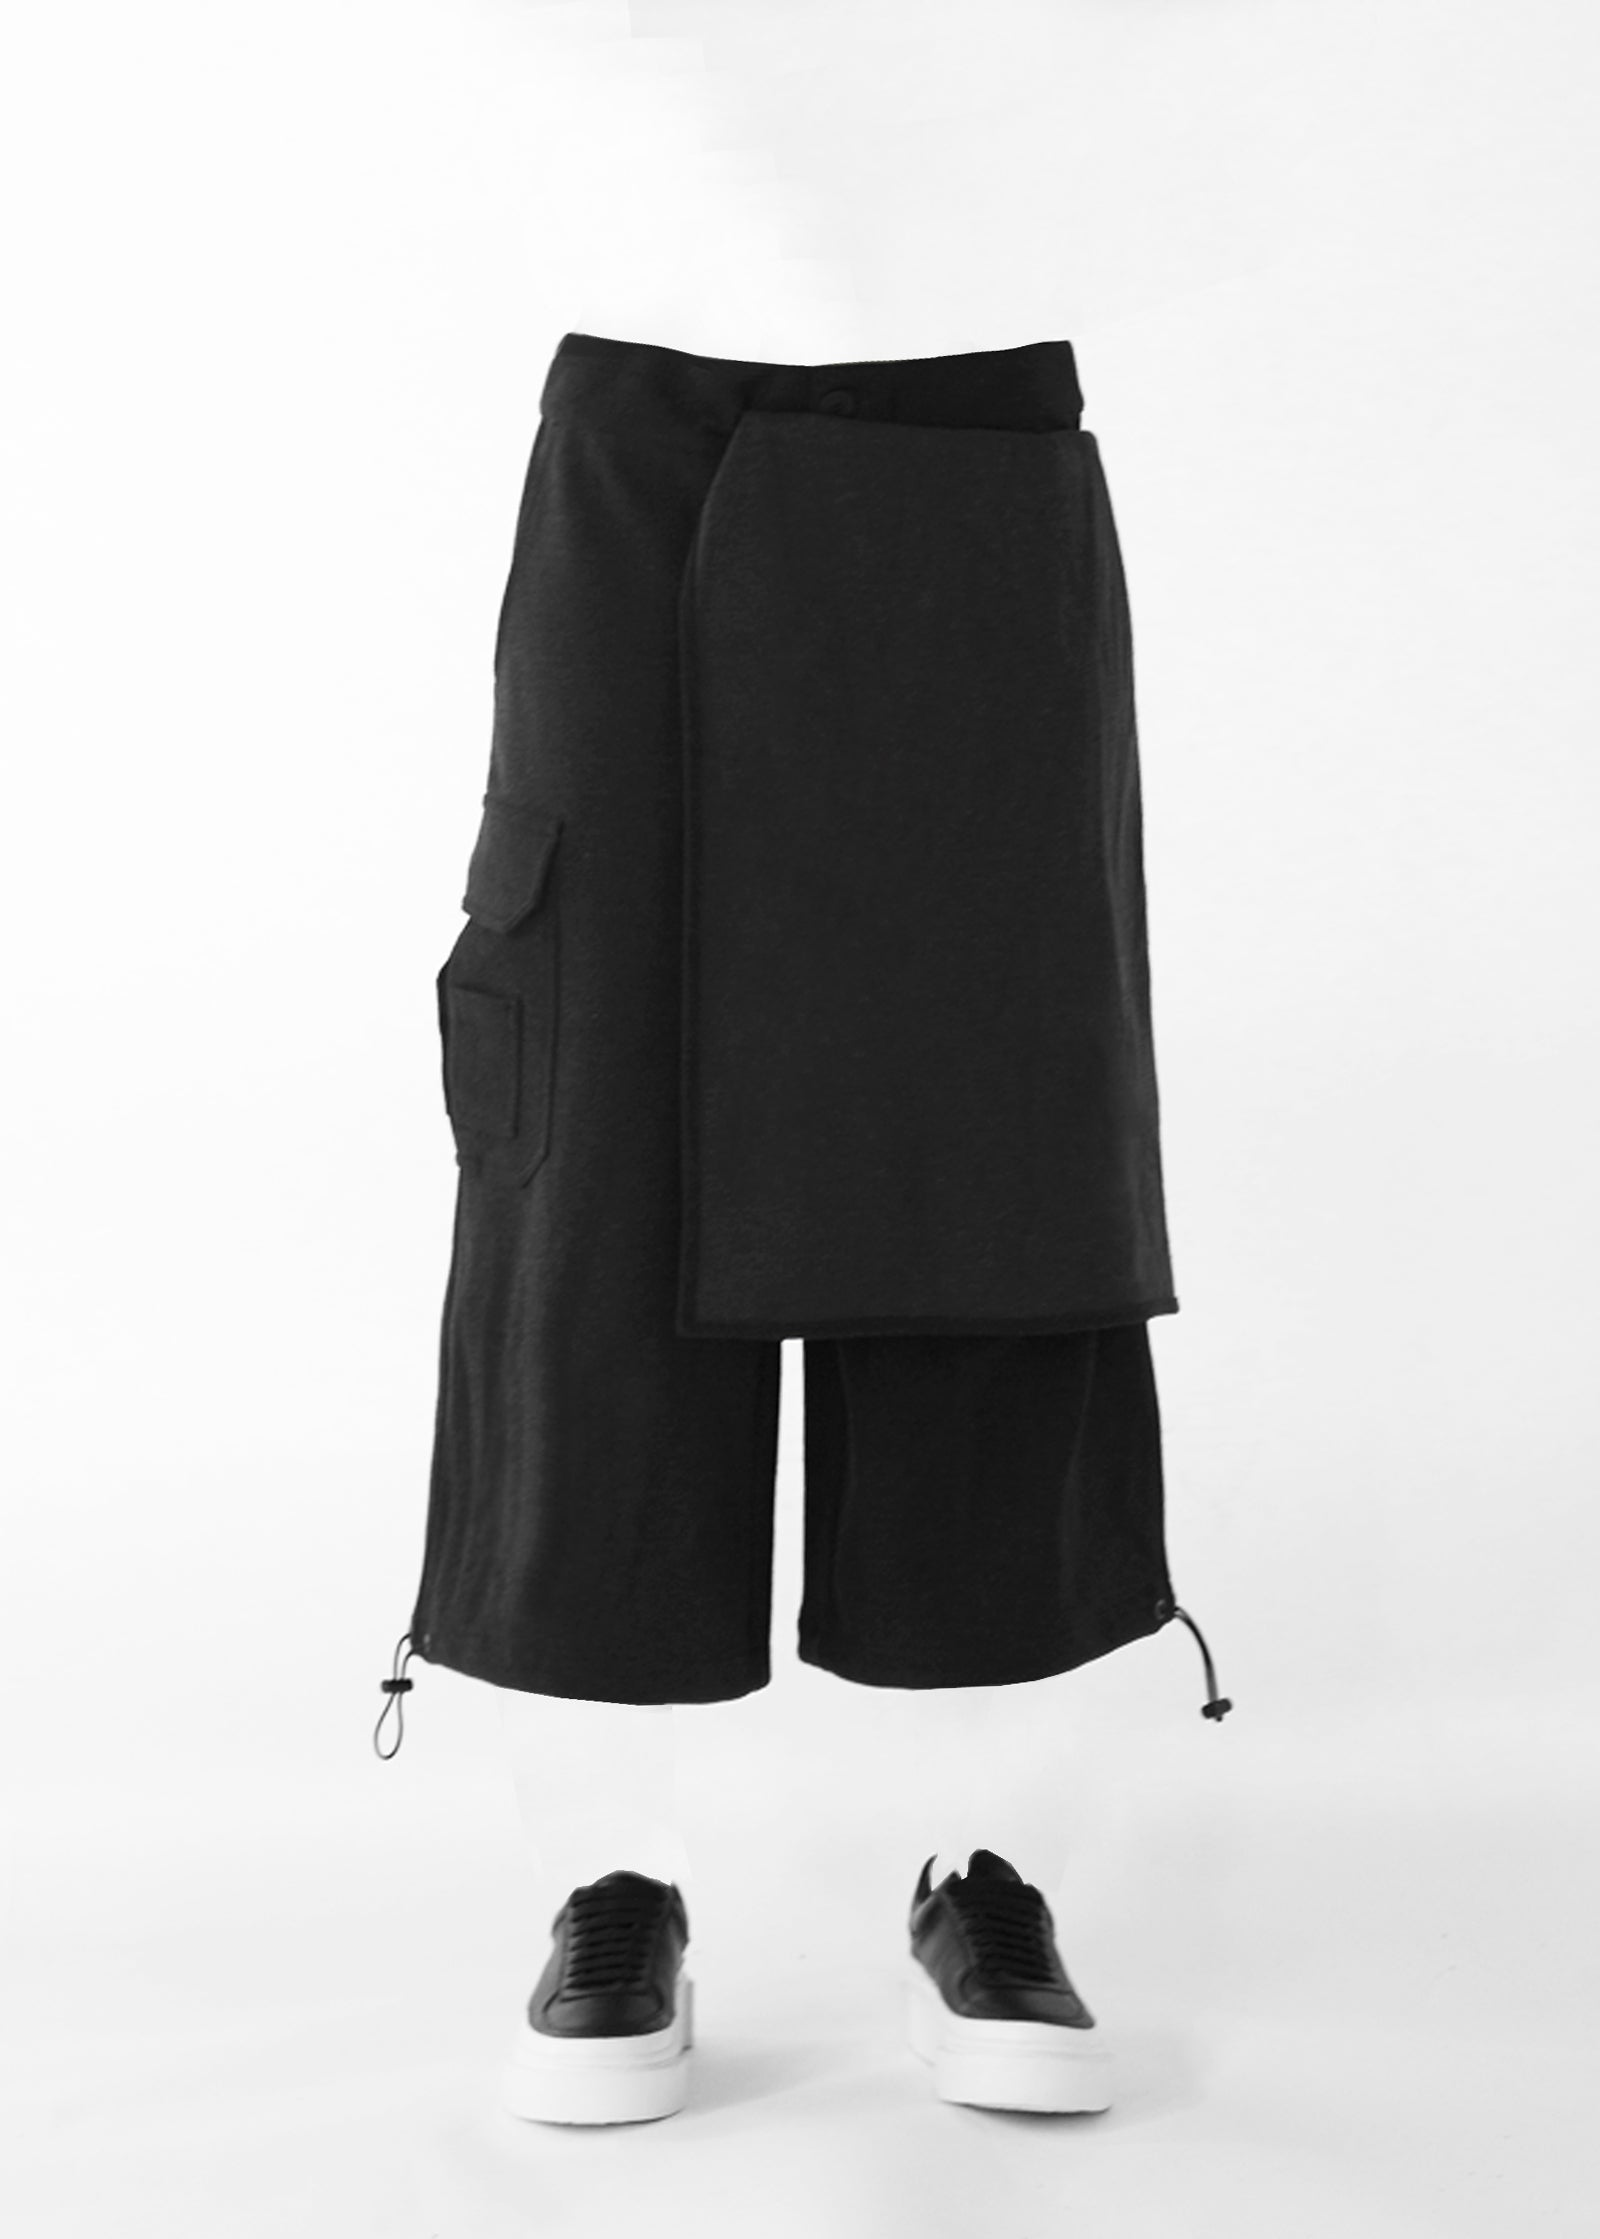 CGNY 2019 S/S Asymmetrical Layered Shorts - CGNY